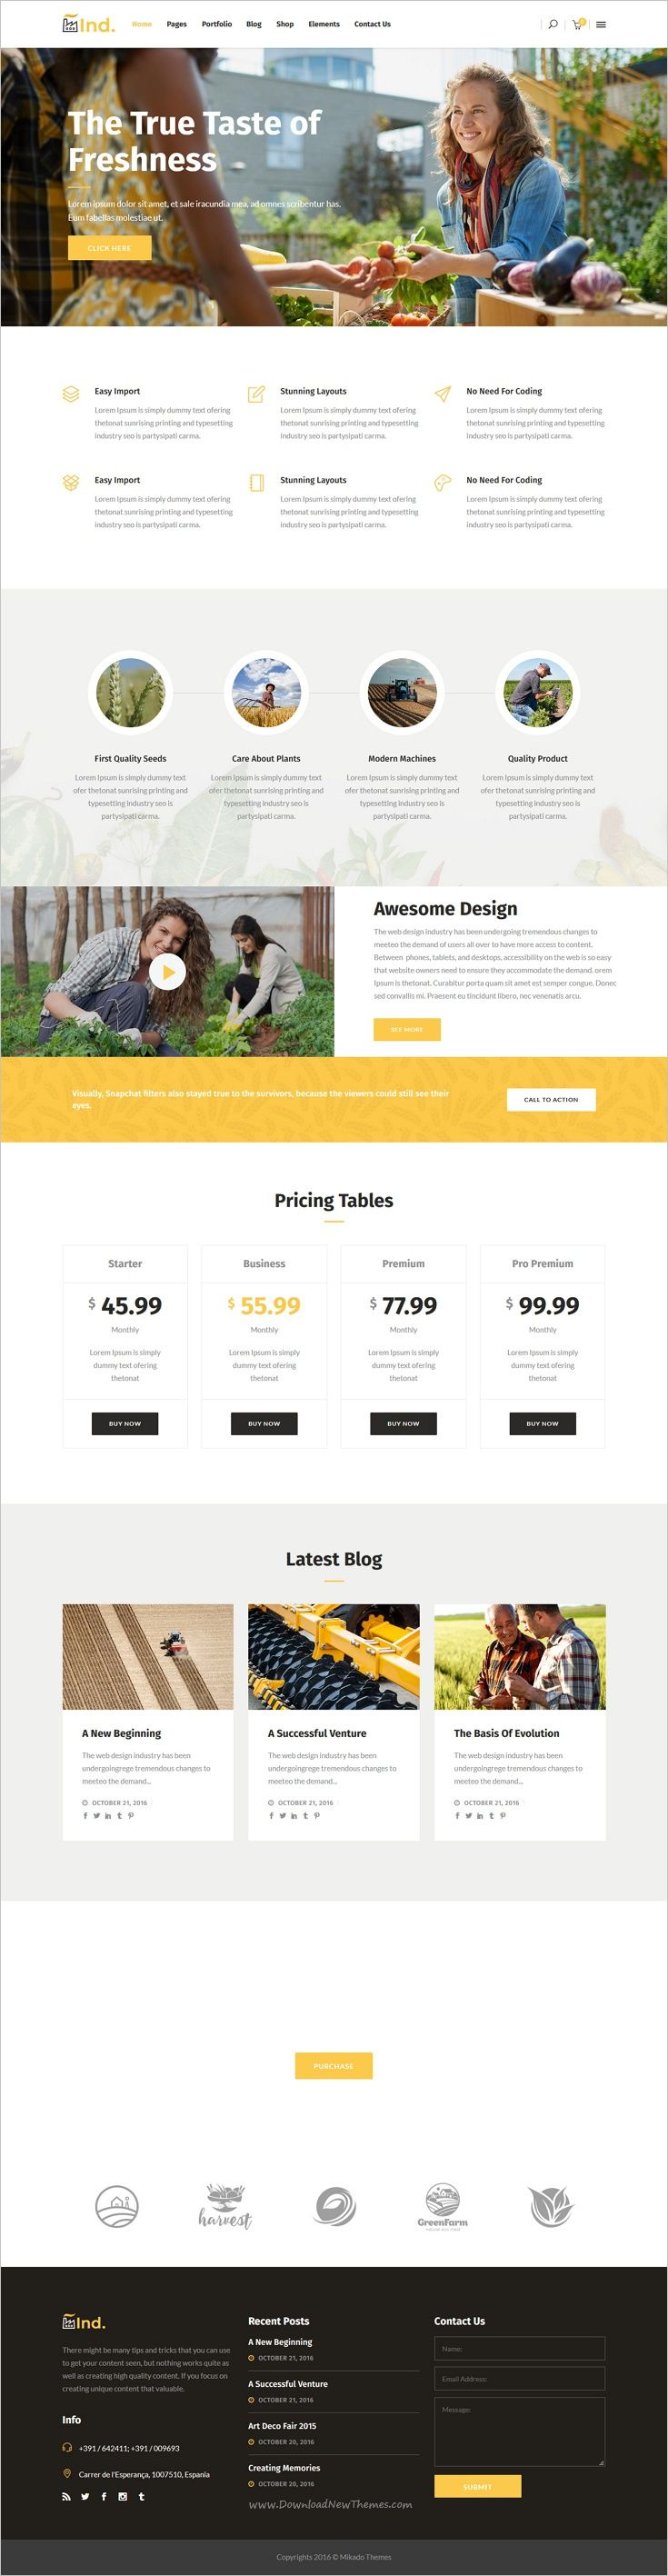 Industrialist is an wonderful responsive #WordPress theme for #agriculture industry and manufacturing business #website with 6 unique homepage layouts download now➩ https://themeforest.net/item/industrialist-an-expert-theme-for-industry-manufacturing-businesses/18940209?ref=Datasata